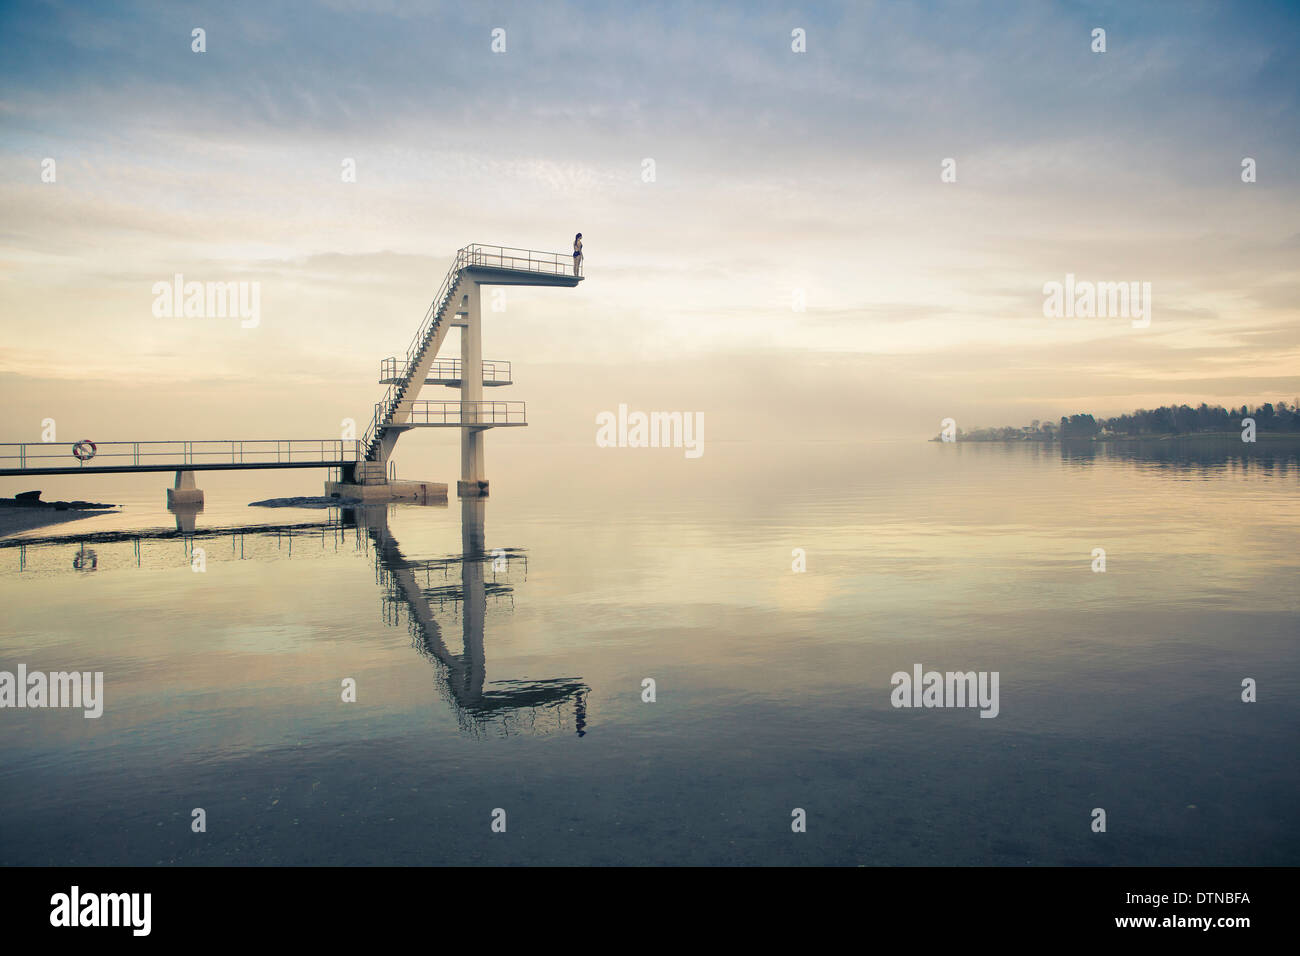 Girl diver stands on diving platform about to dive into beautiful lake - Stock Image